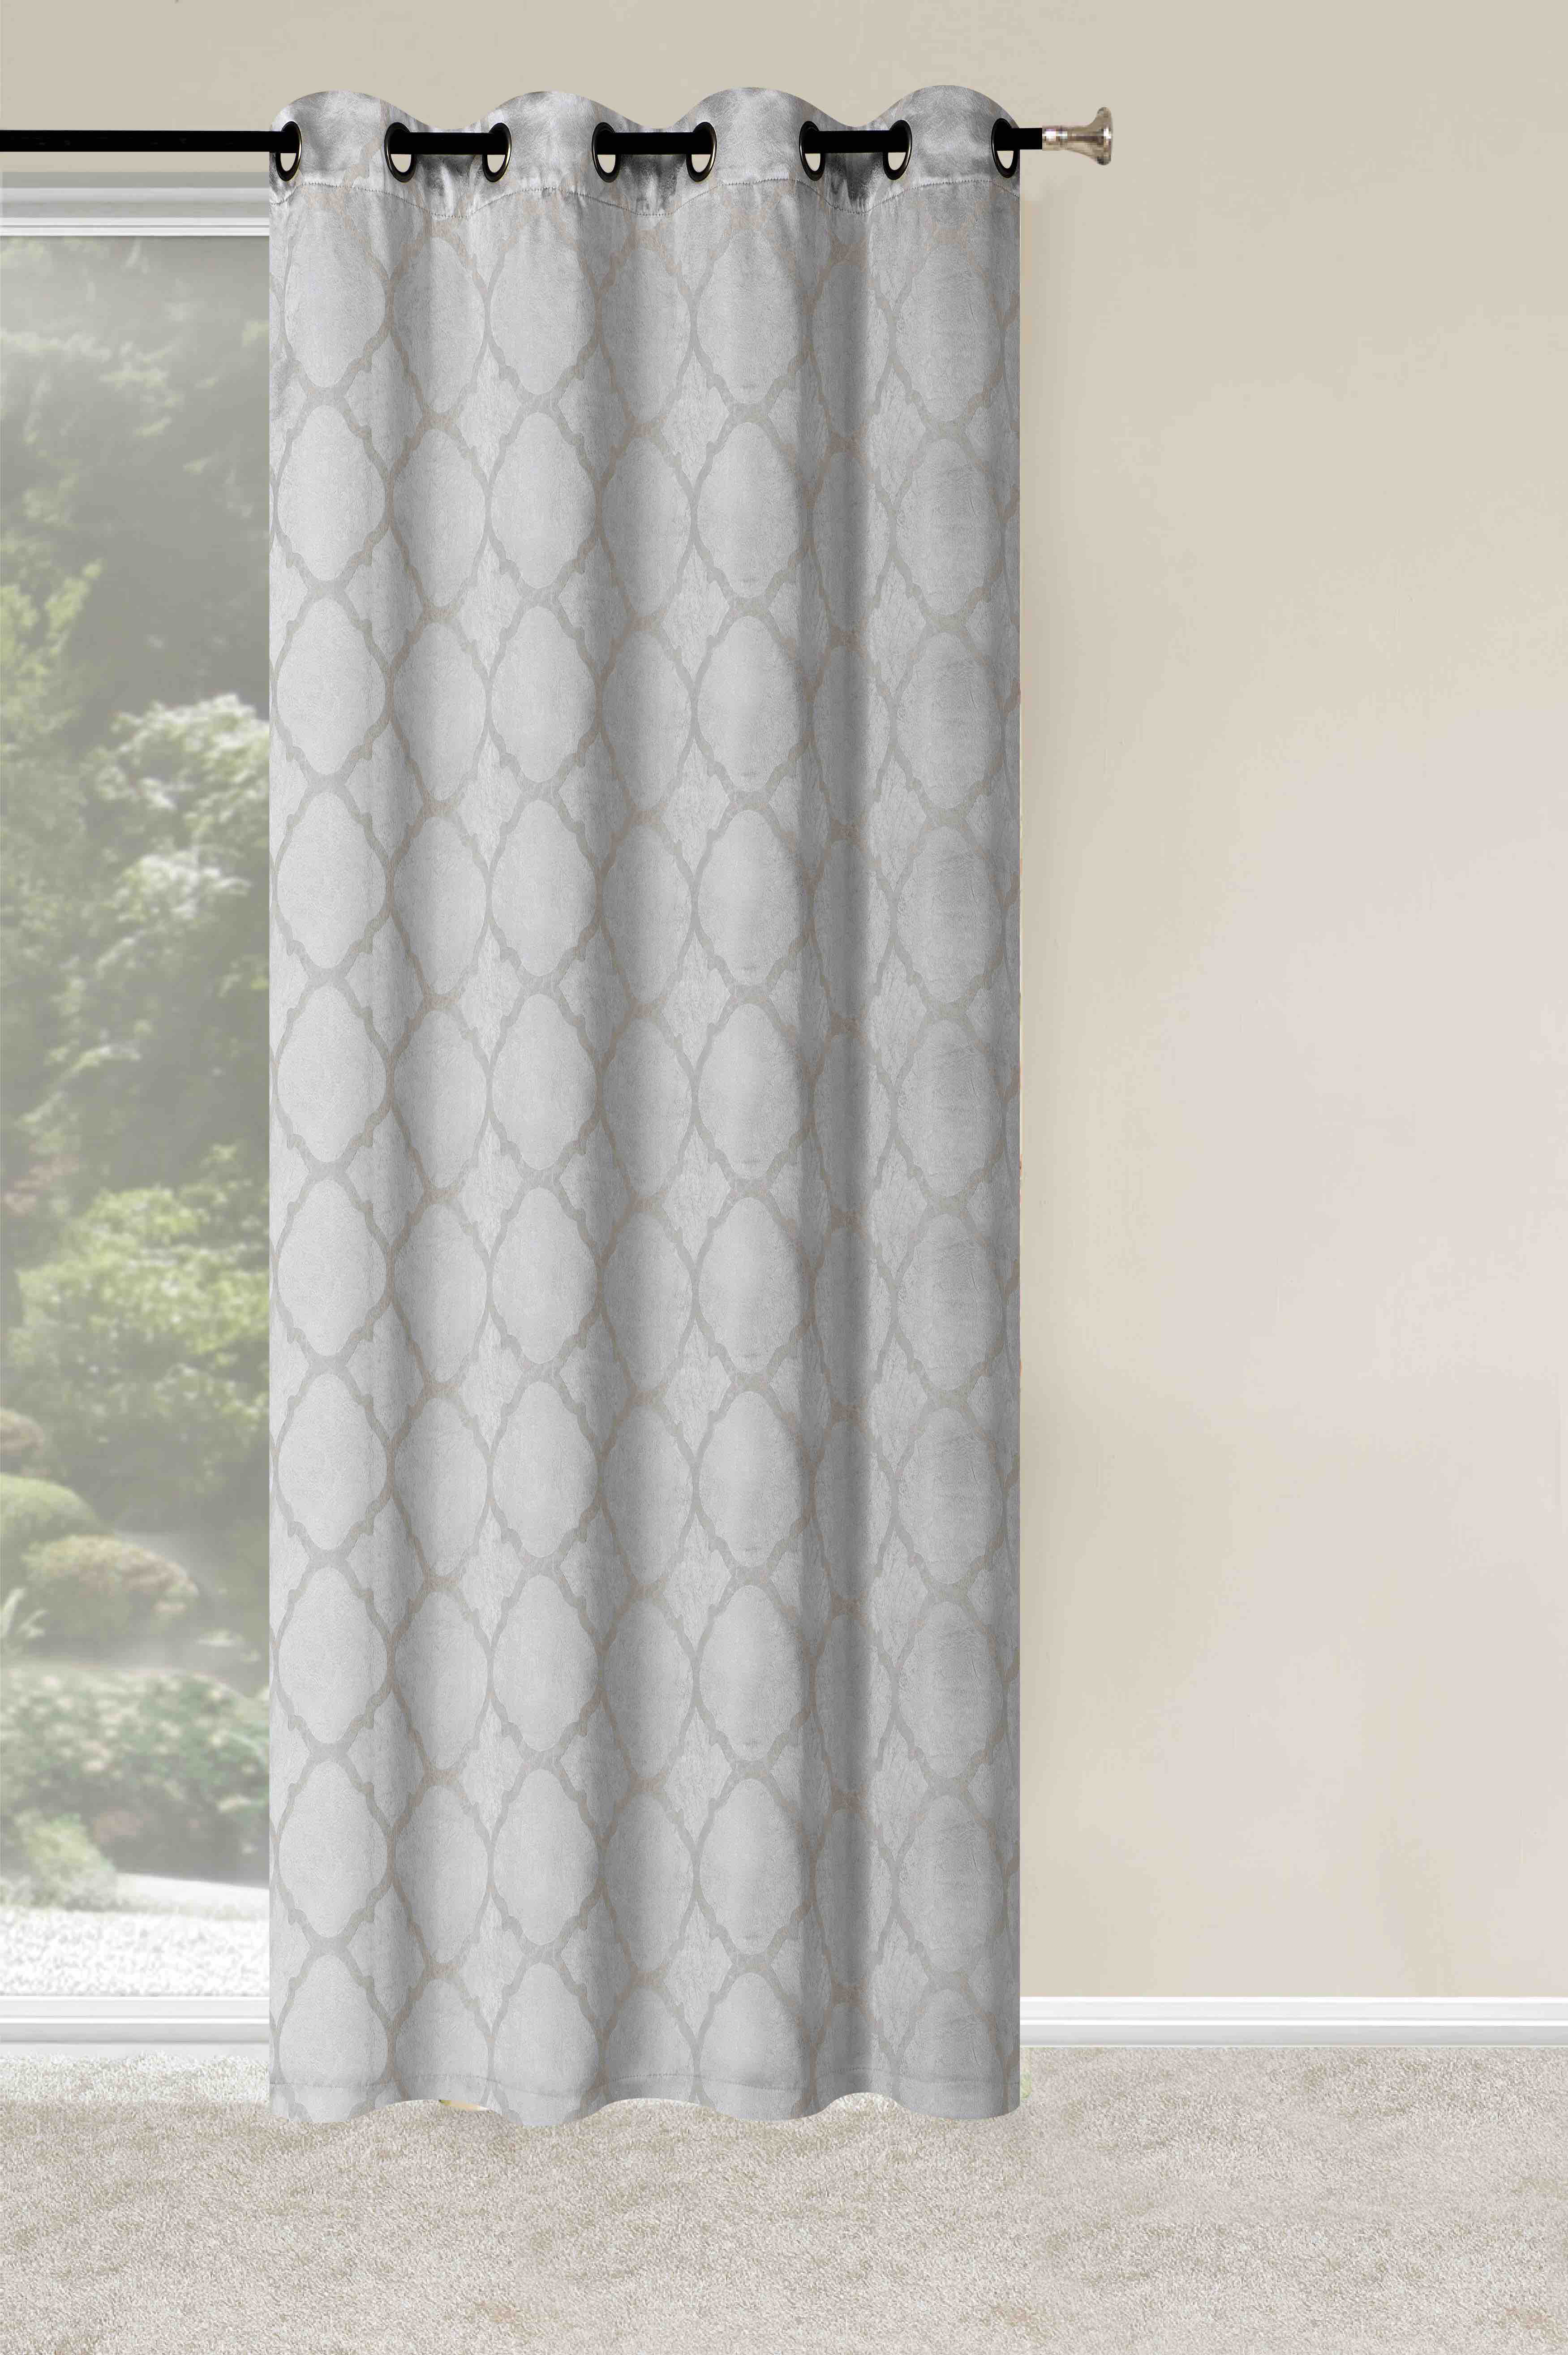 Arrowsmith Energy Saving Basic Metallic Lattice Geometric Blackout Thermal Grommet Curtain Panel Pair With Regard To Twig Insulated Blackout Curtain Panel Pairs With Grommet Top (View 21 of 30)